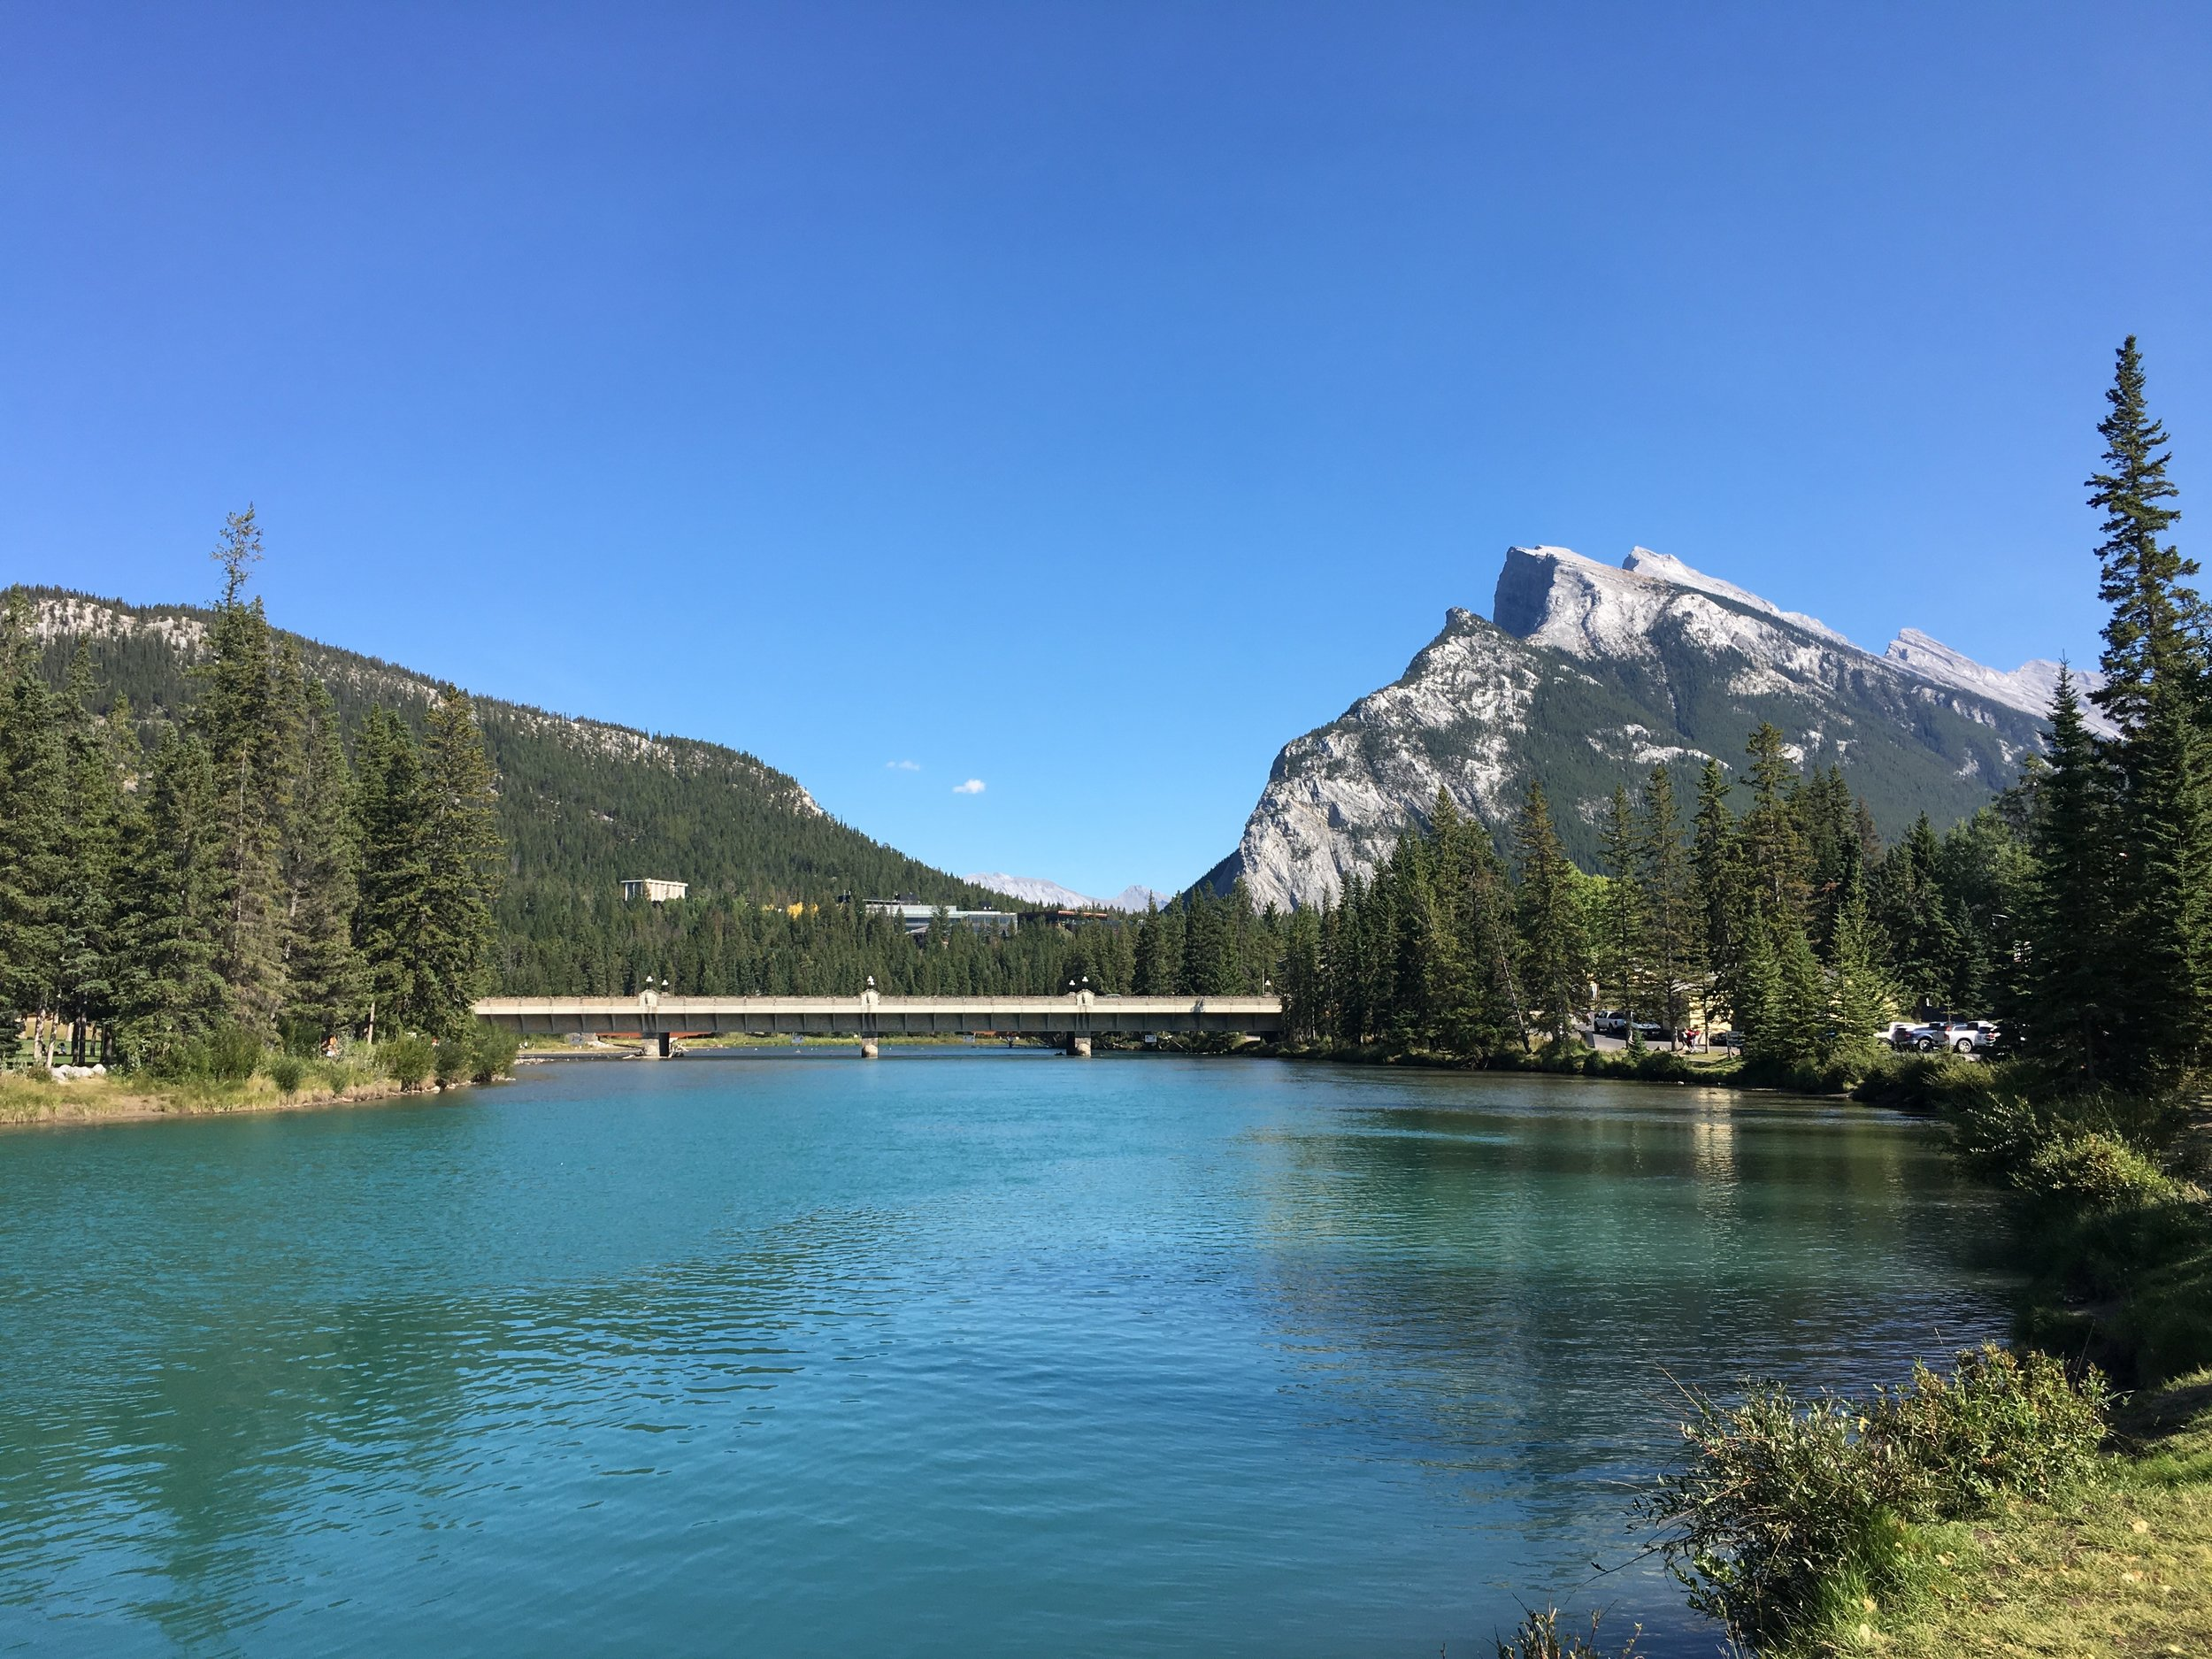 The Bow River which flows the length of Banff National Park